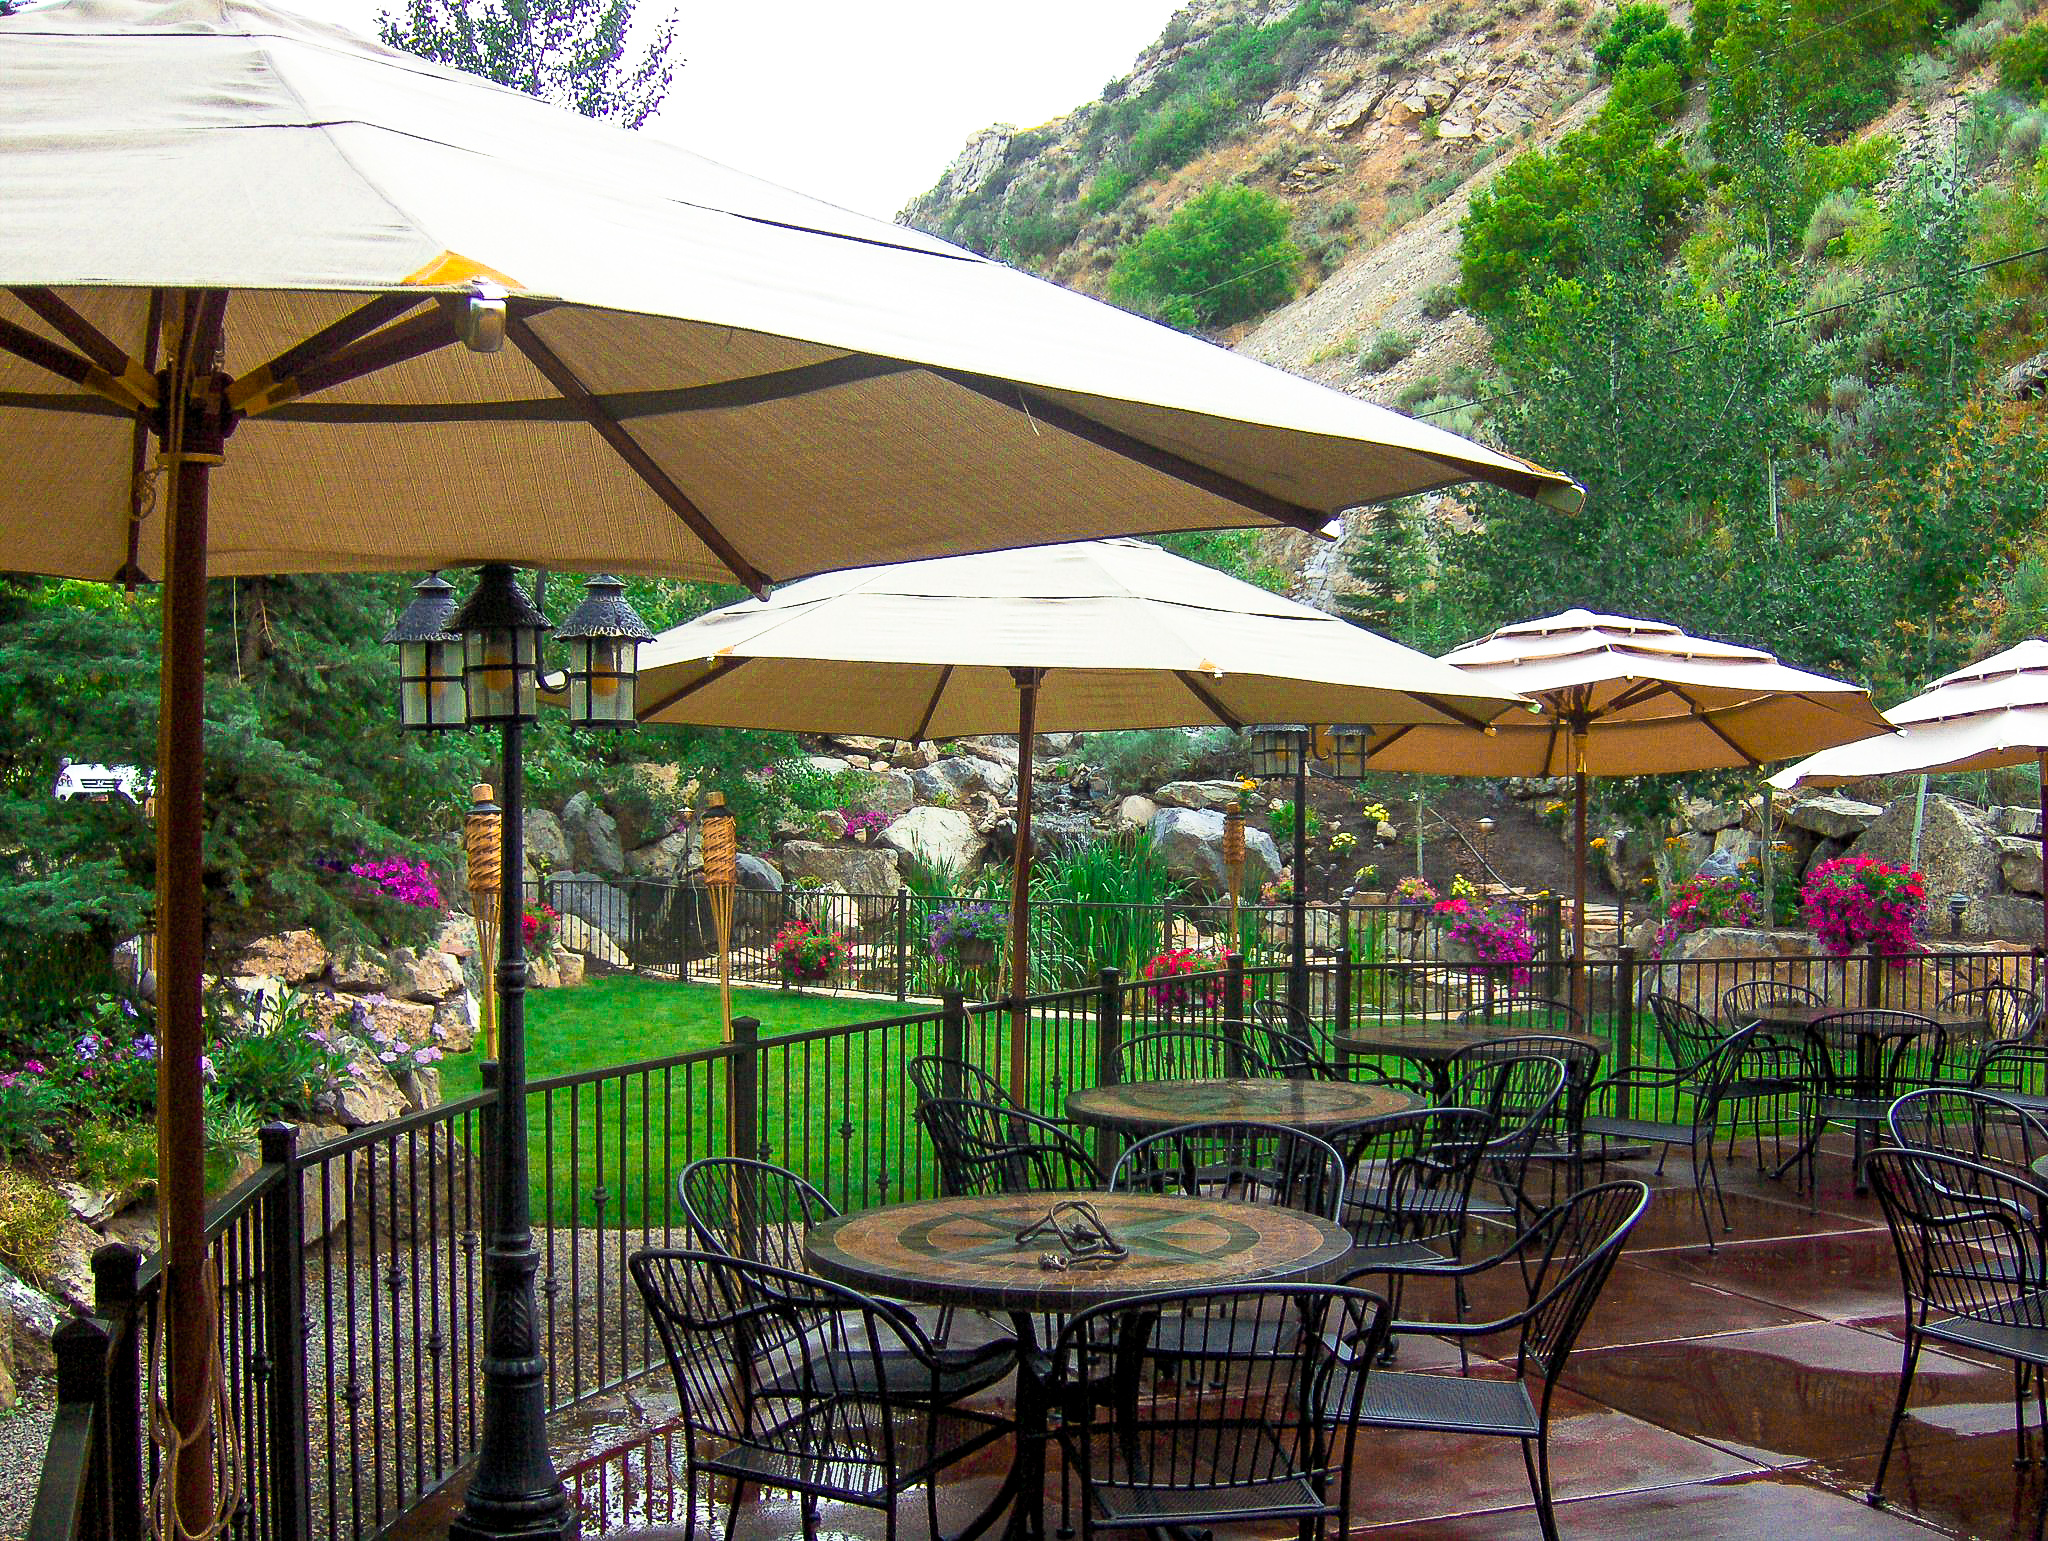 View from the Patio Seating Area